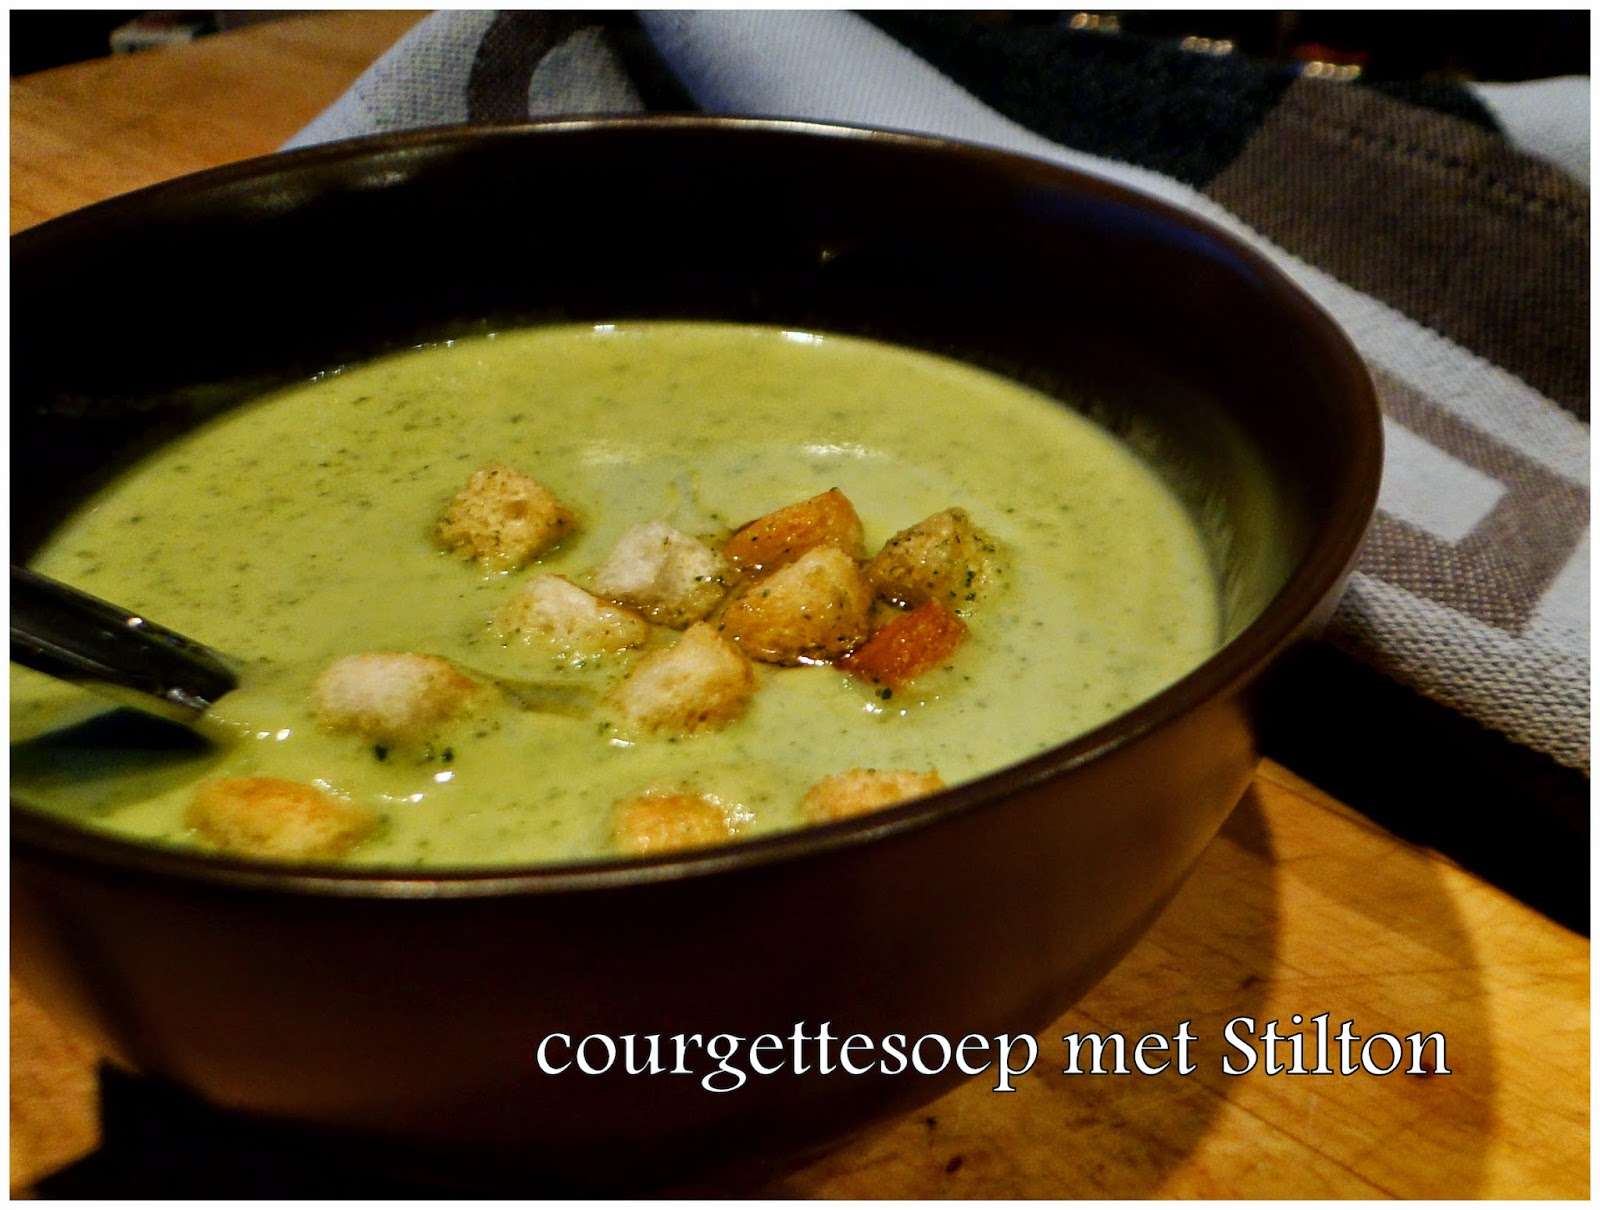 recept courgettesoep met Stilton